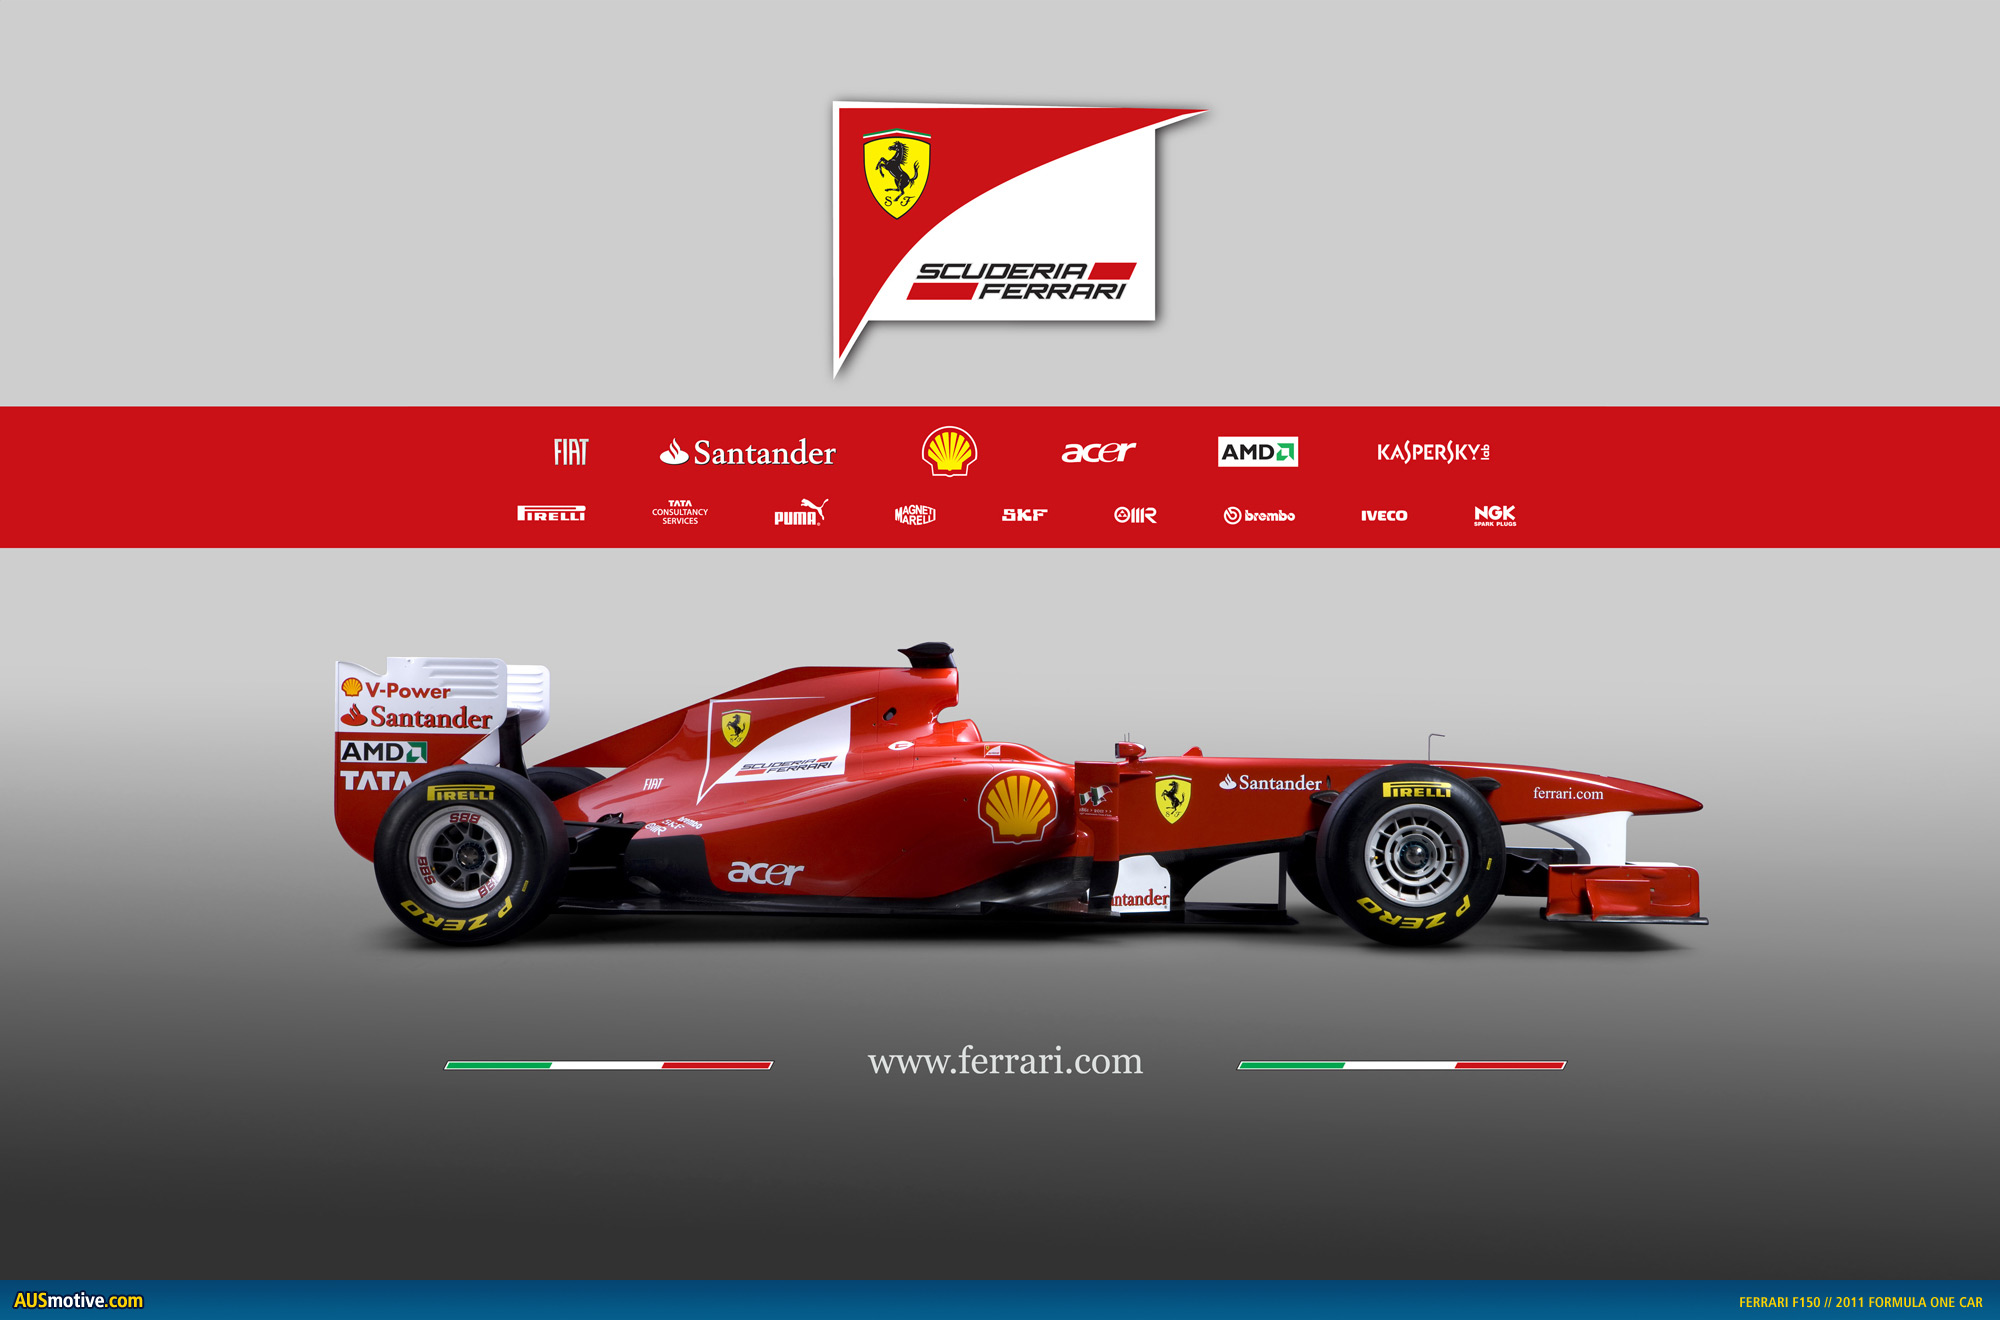 Ferrari F150 Launch Formula 1 World Cars Wallpaper For Computer